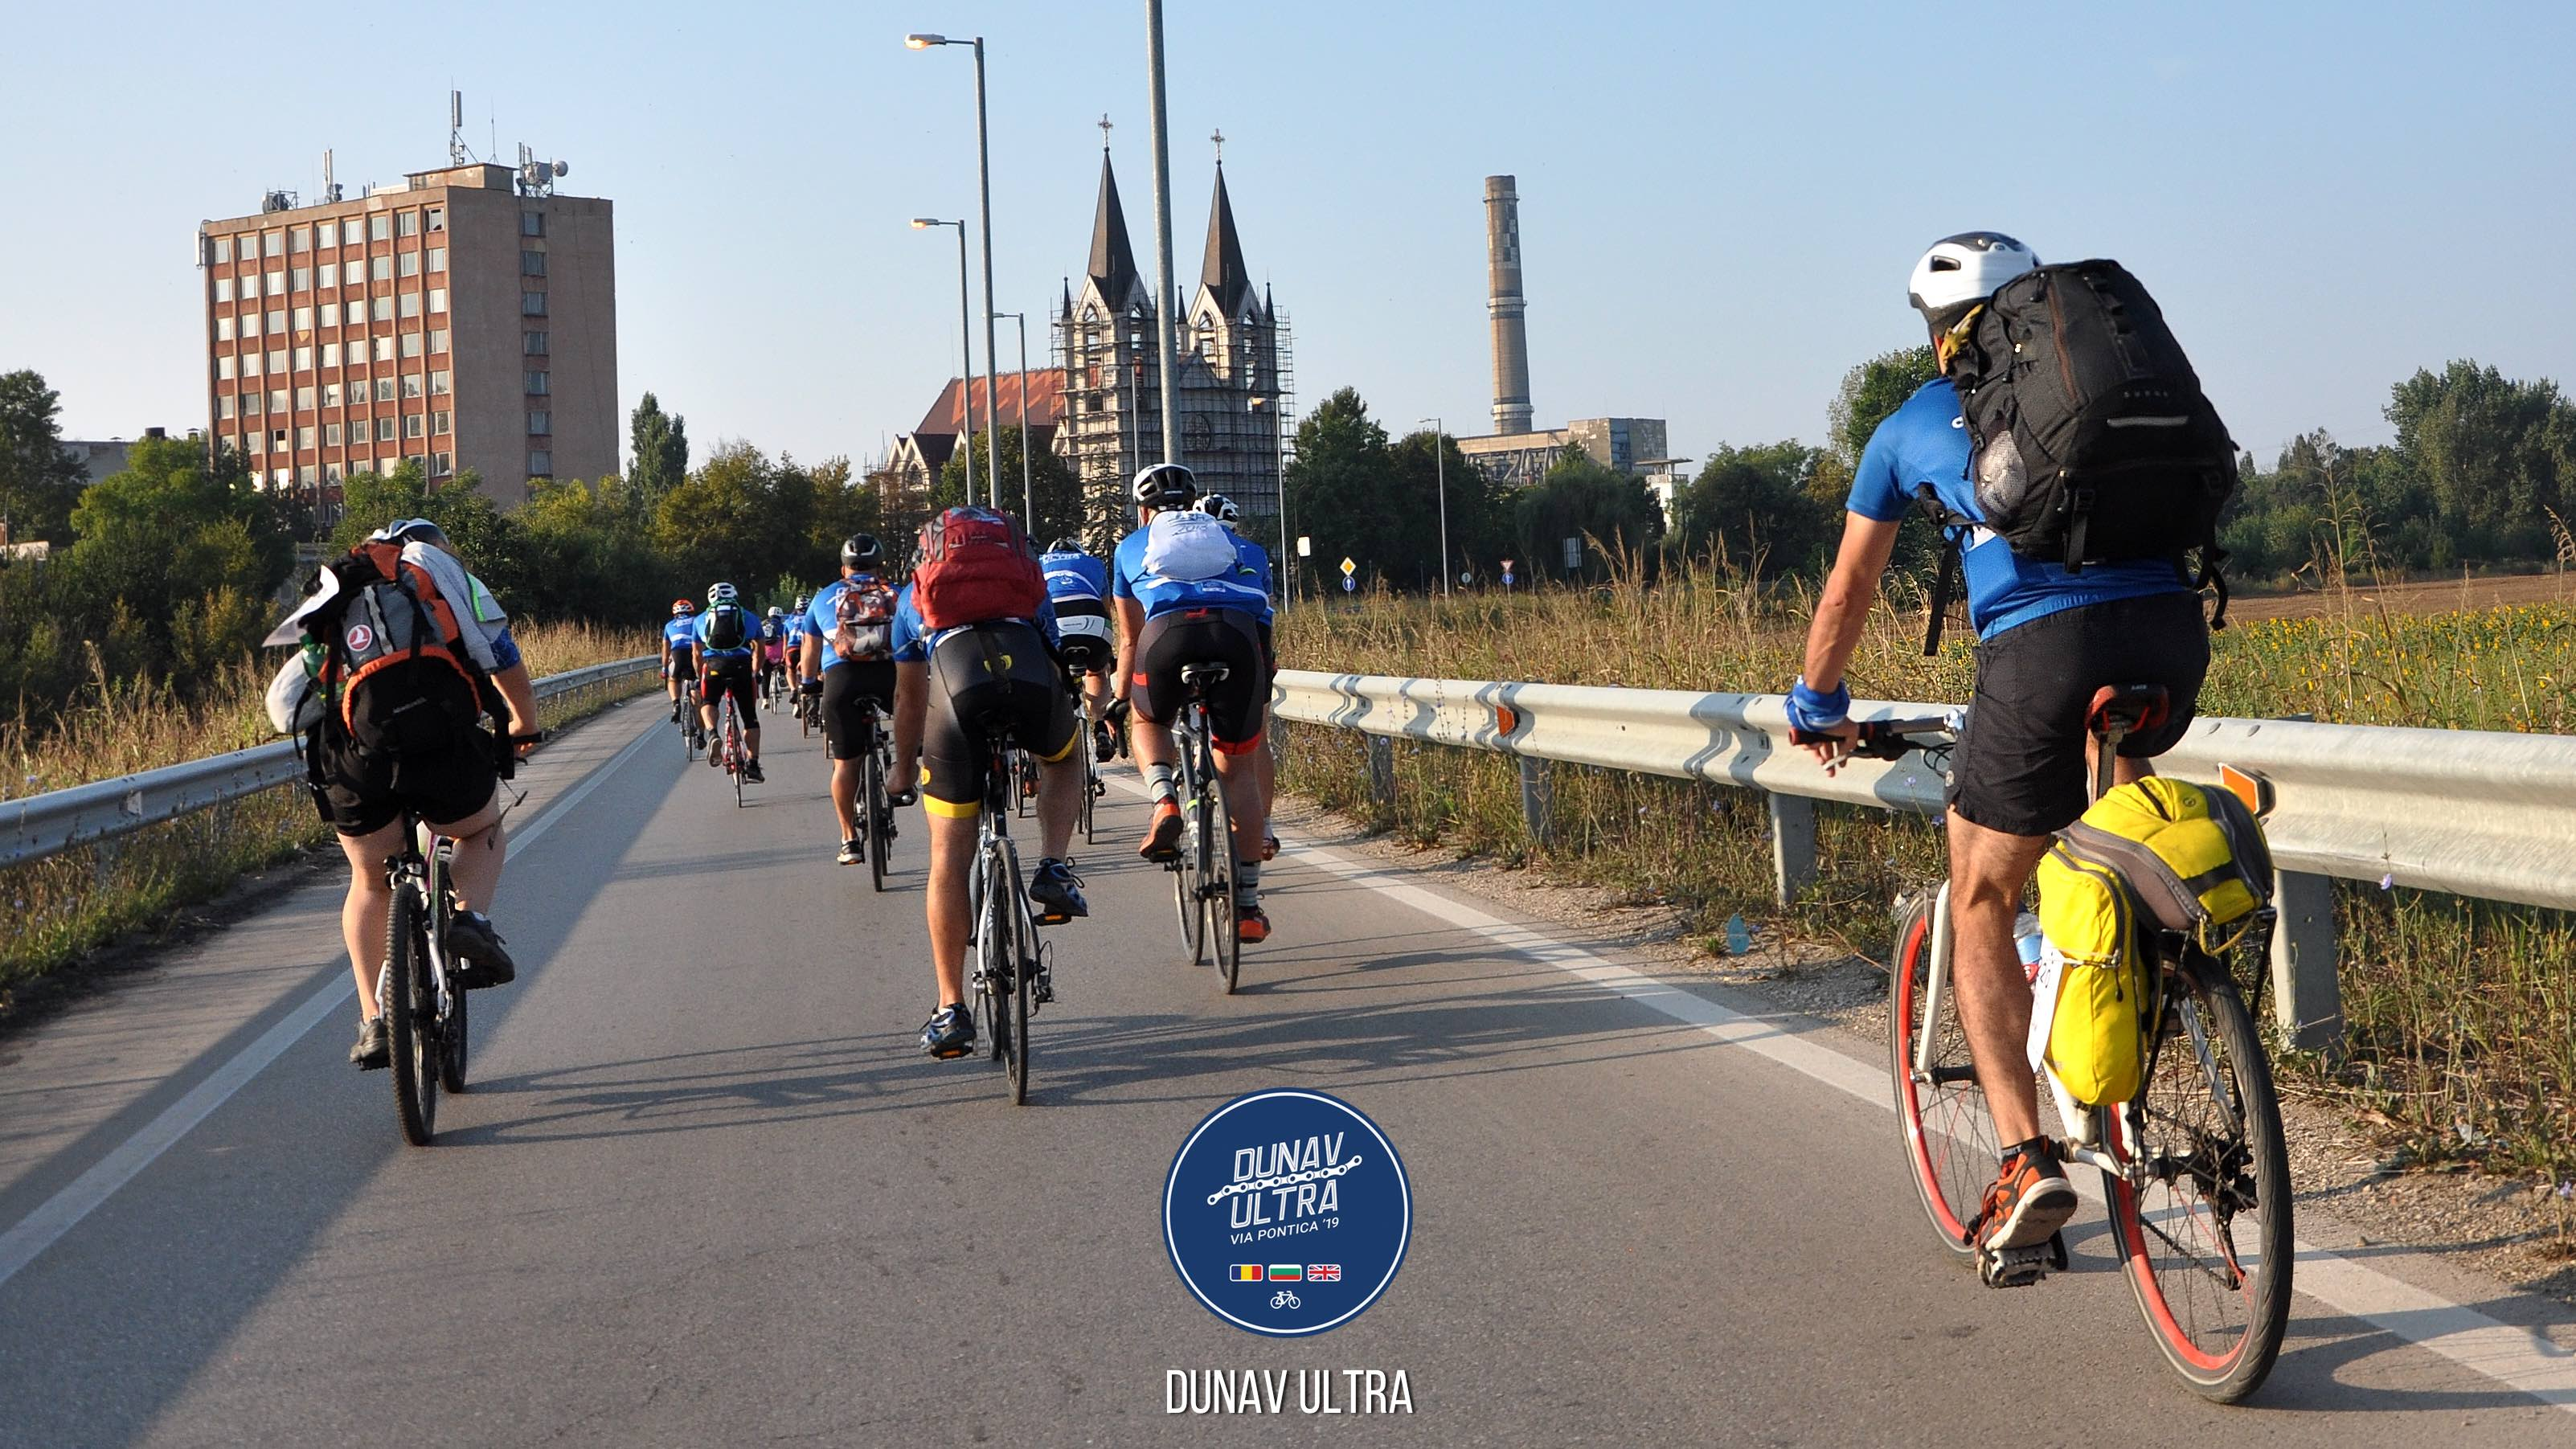 100 cyclists from 4 countries joined the Dunav Ultra Adventure